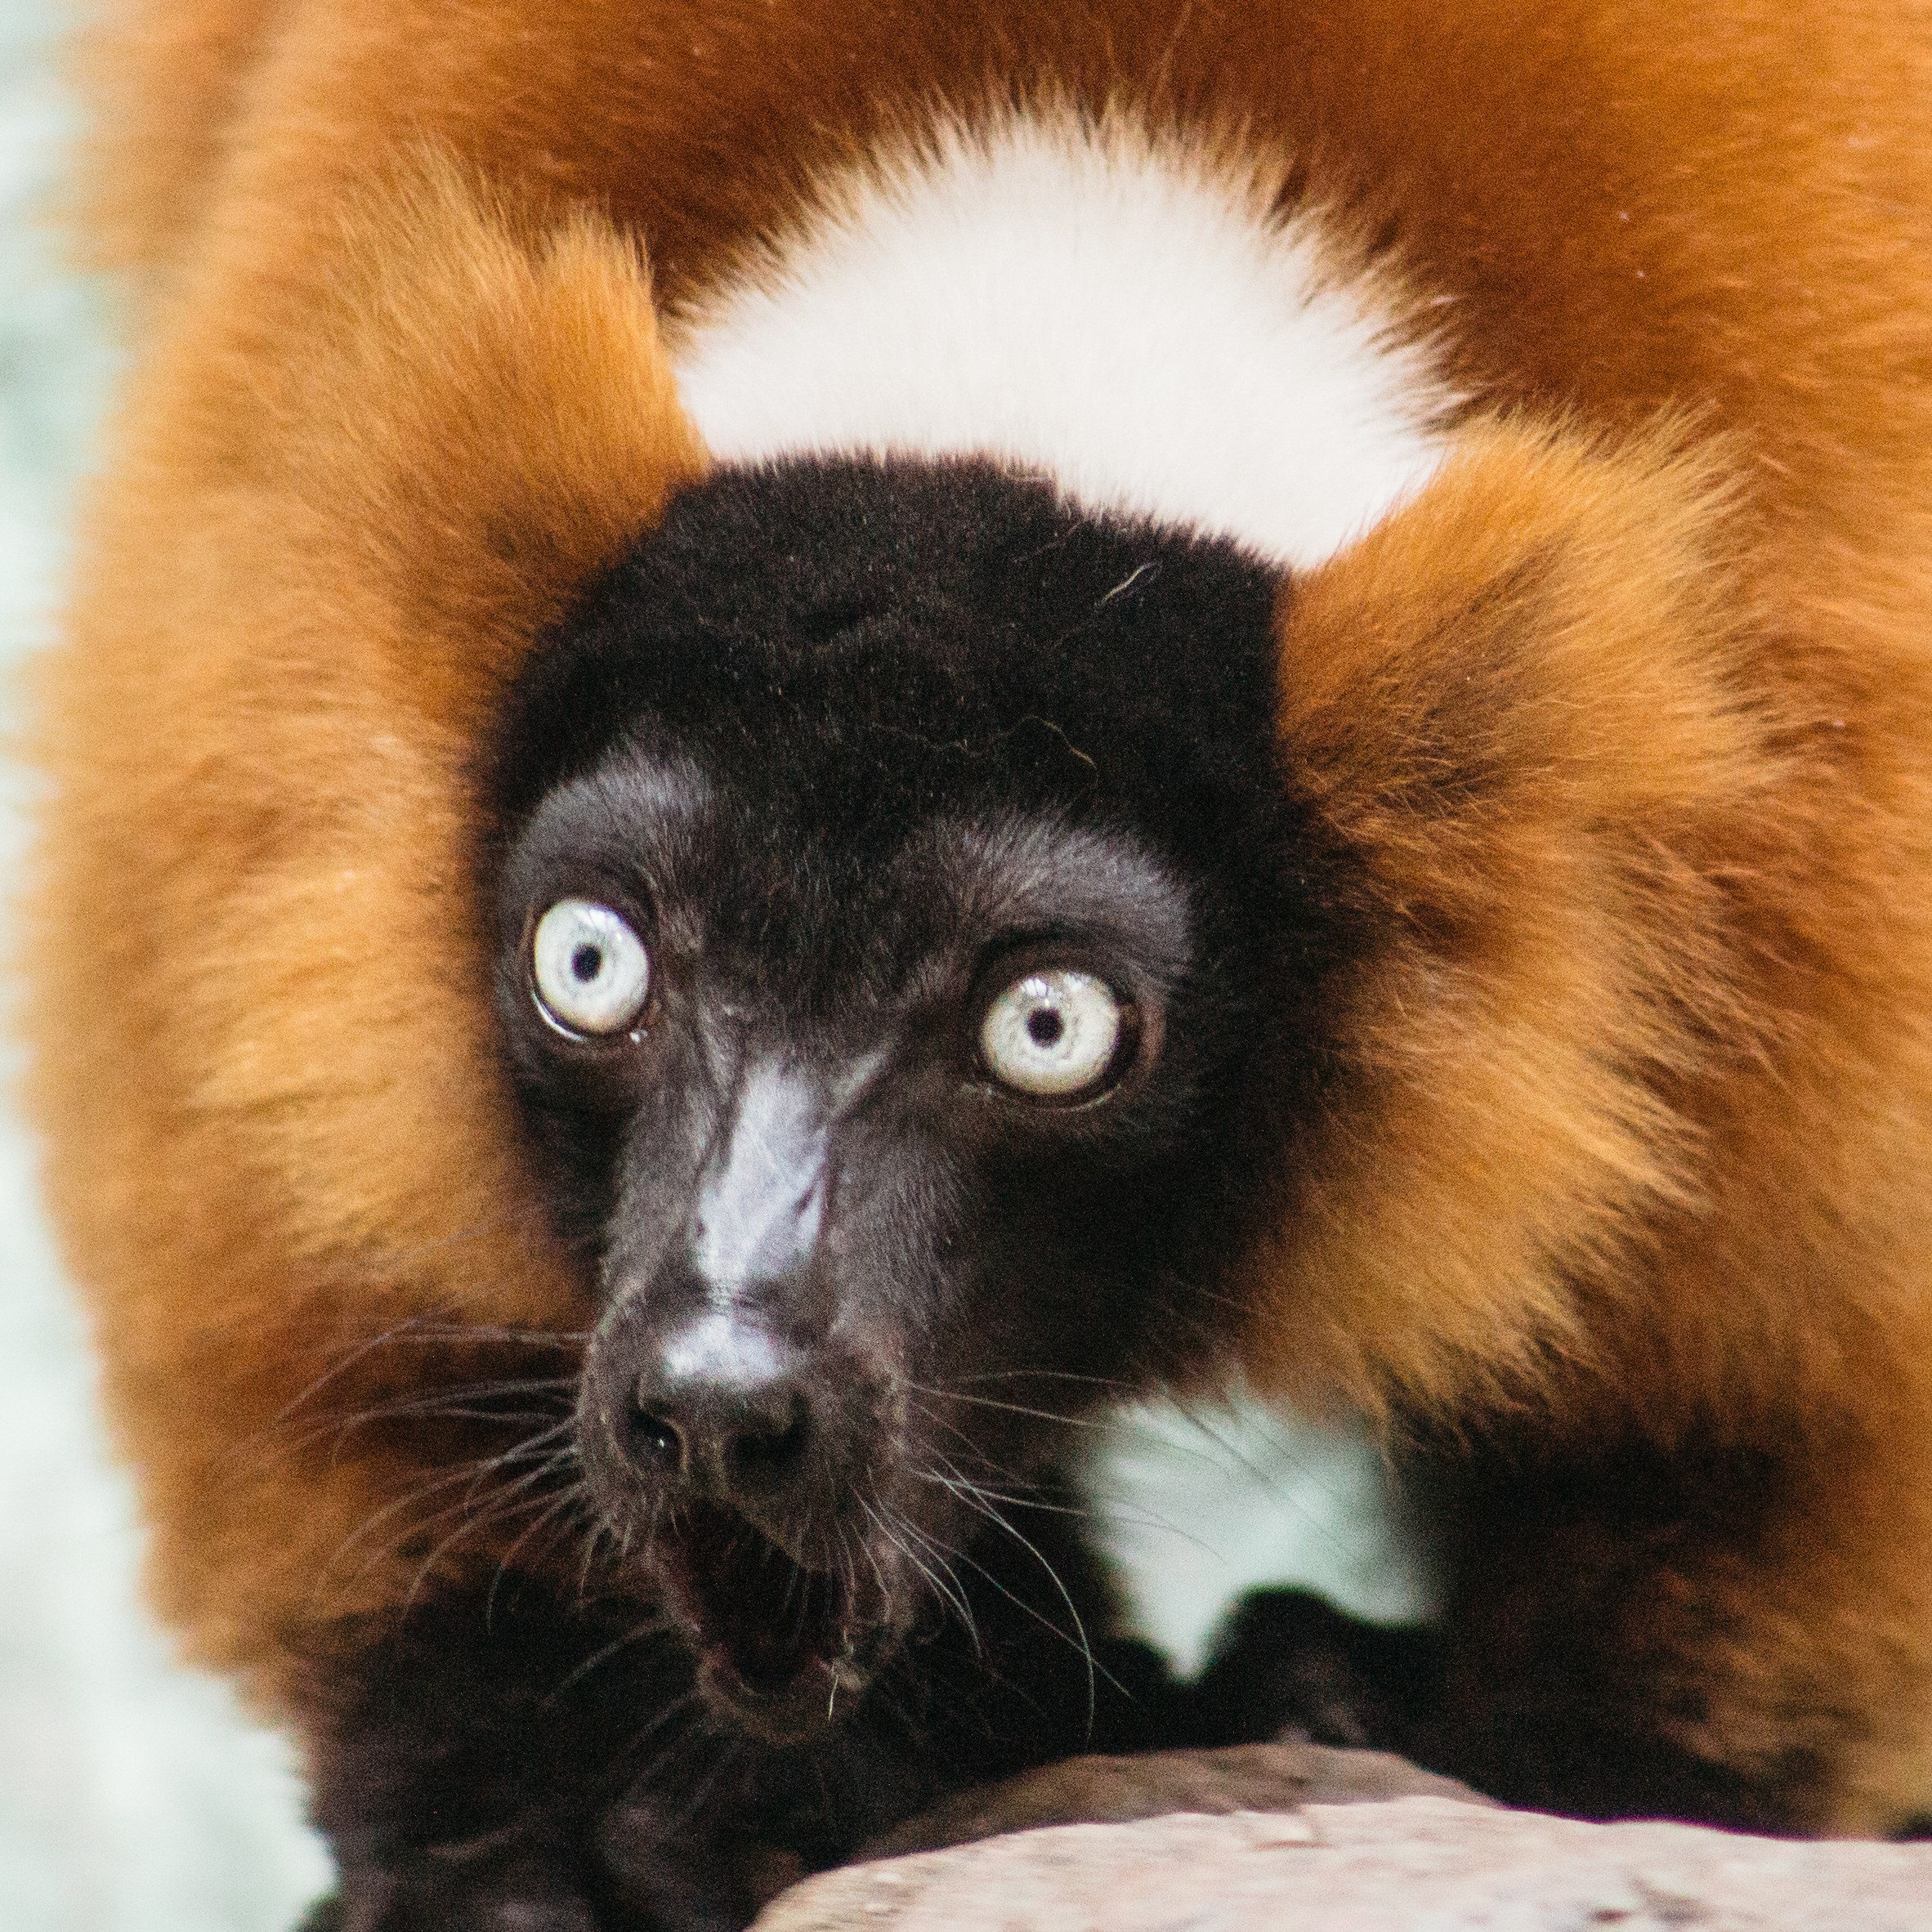 This Lemur was fired up.